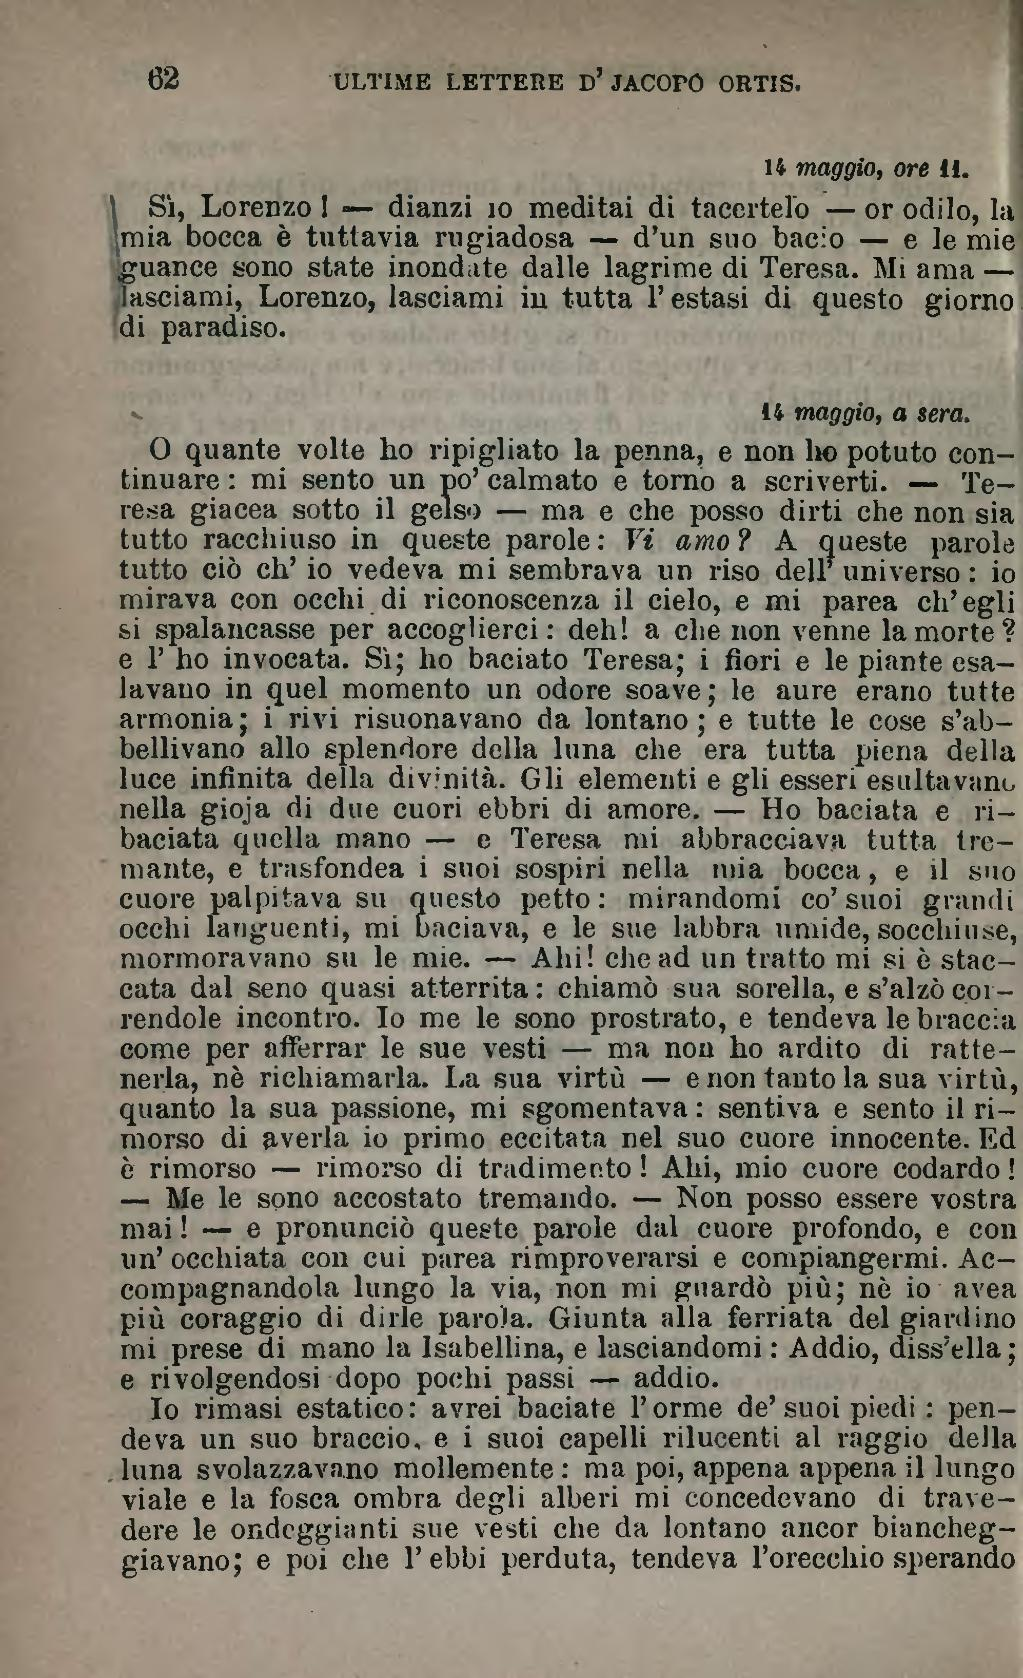 Pagina:Ultime lettere di Jacopo Ortis djvu/64 - Wikisource